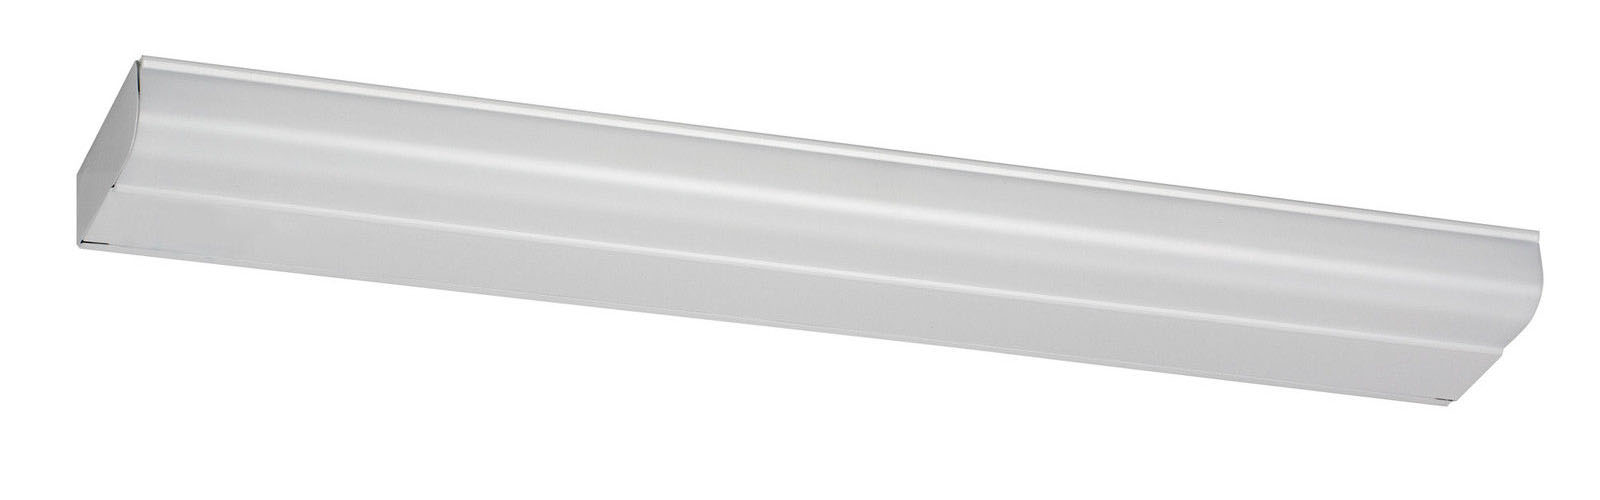 "24.25"" Slimfit Fluorescent Undercounter Light"